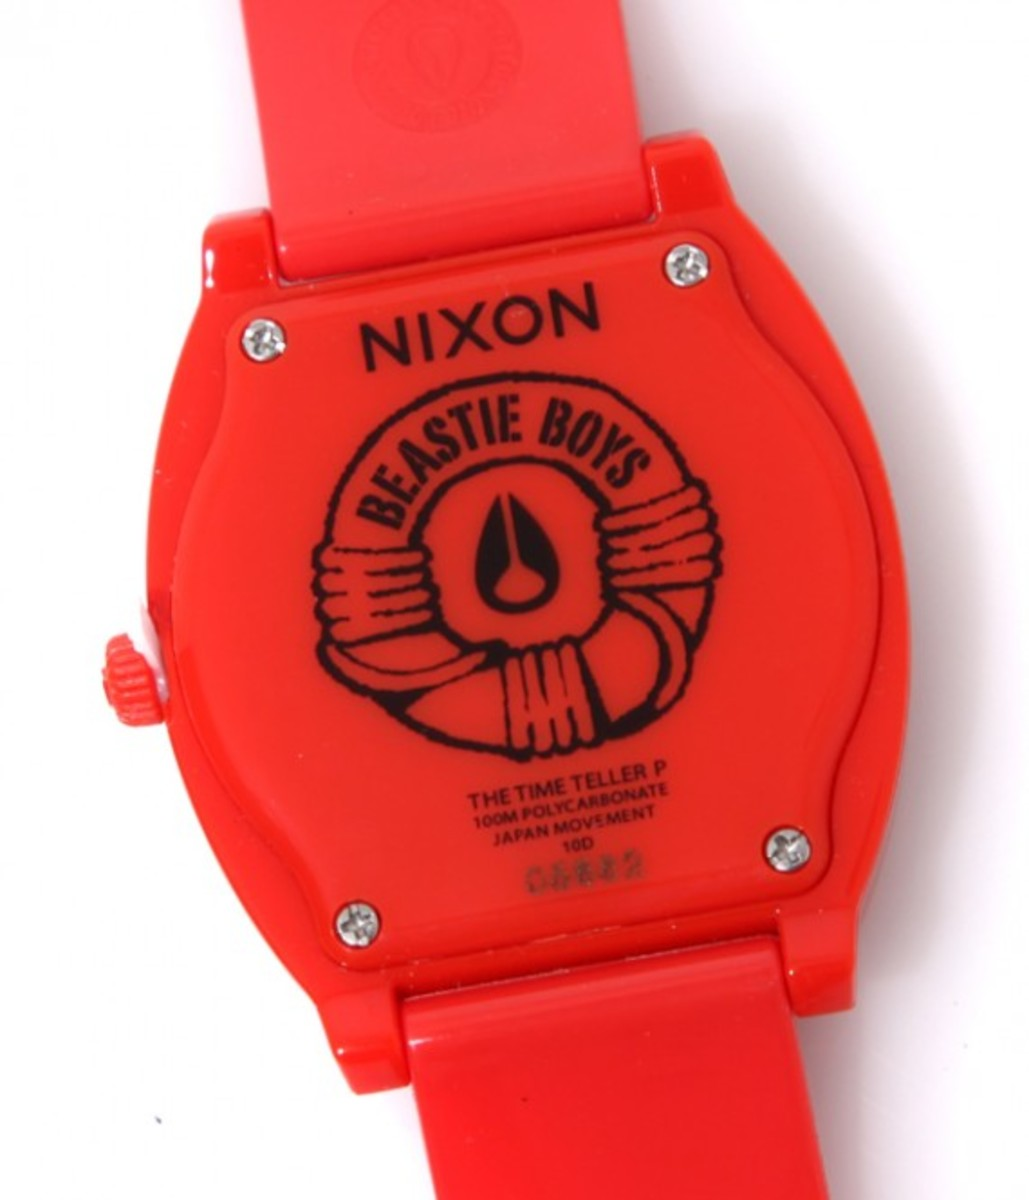 beastie-boys-nixon-time-teller-p-red-05